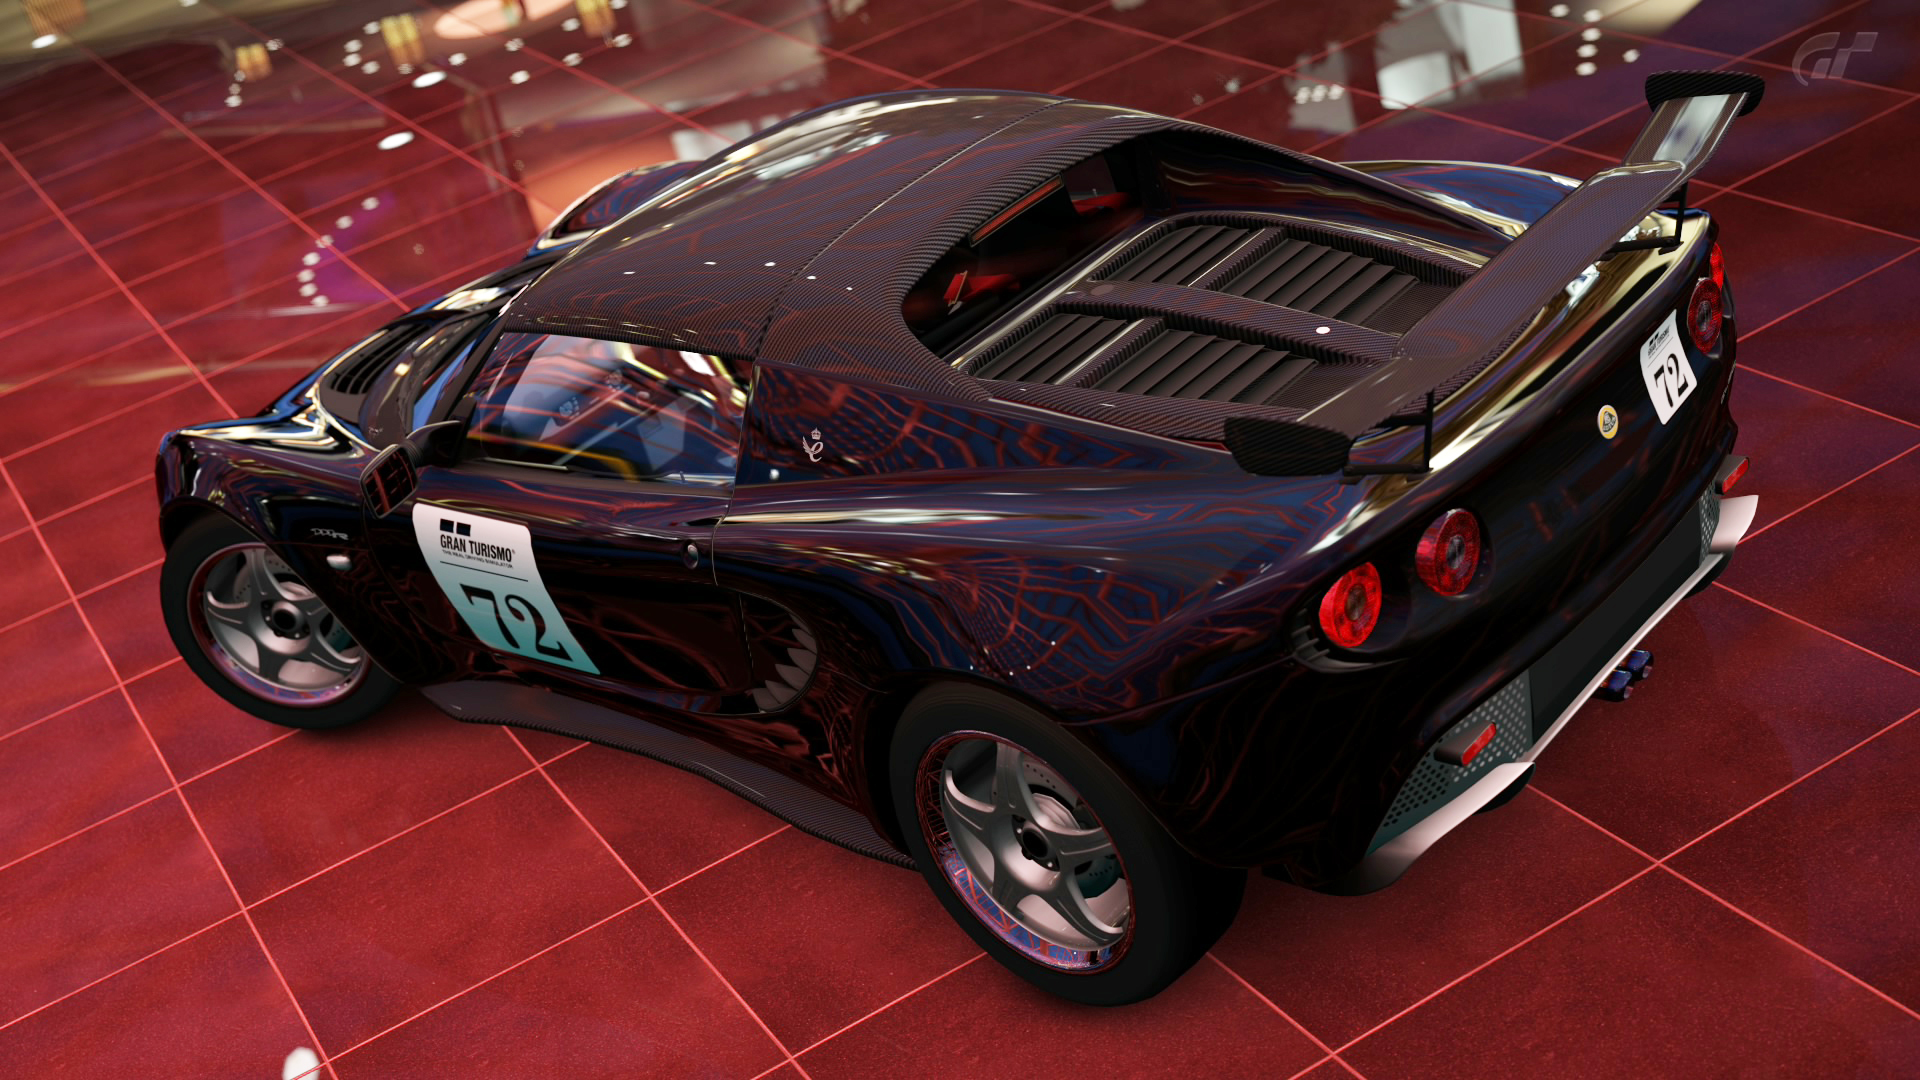 2004 lotus elise 111r rm gran turismo 5 by vertualissimo on deviantart. Black Bedroom Furniture Sets. Home Design Ideas